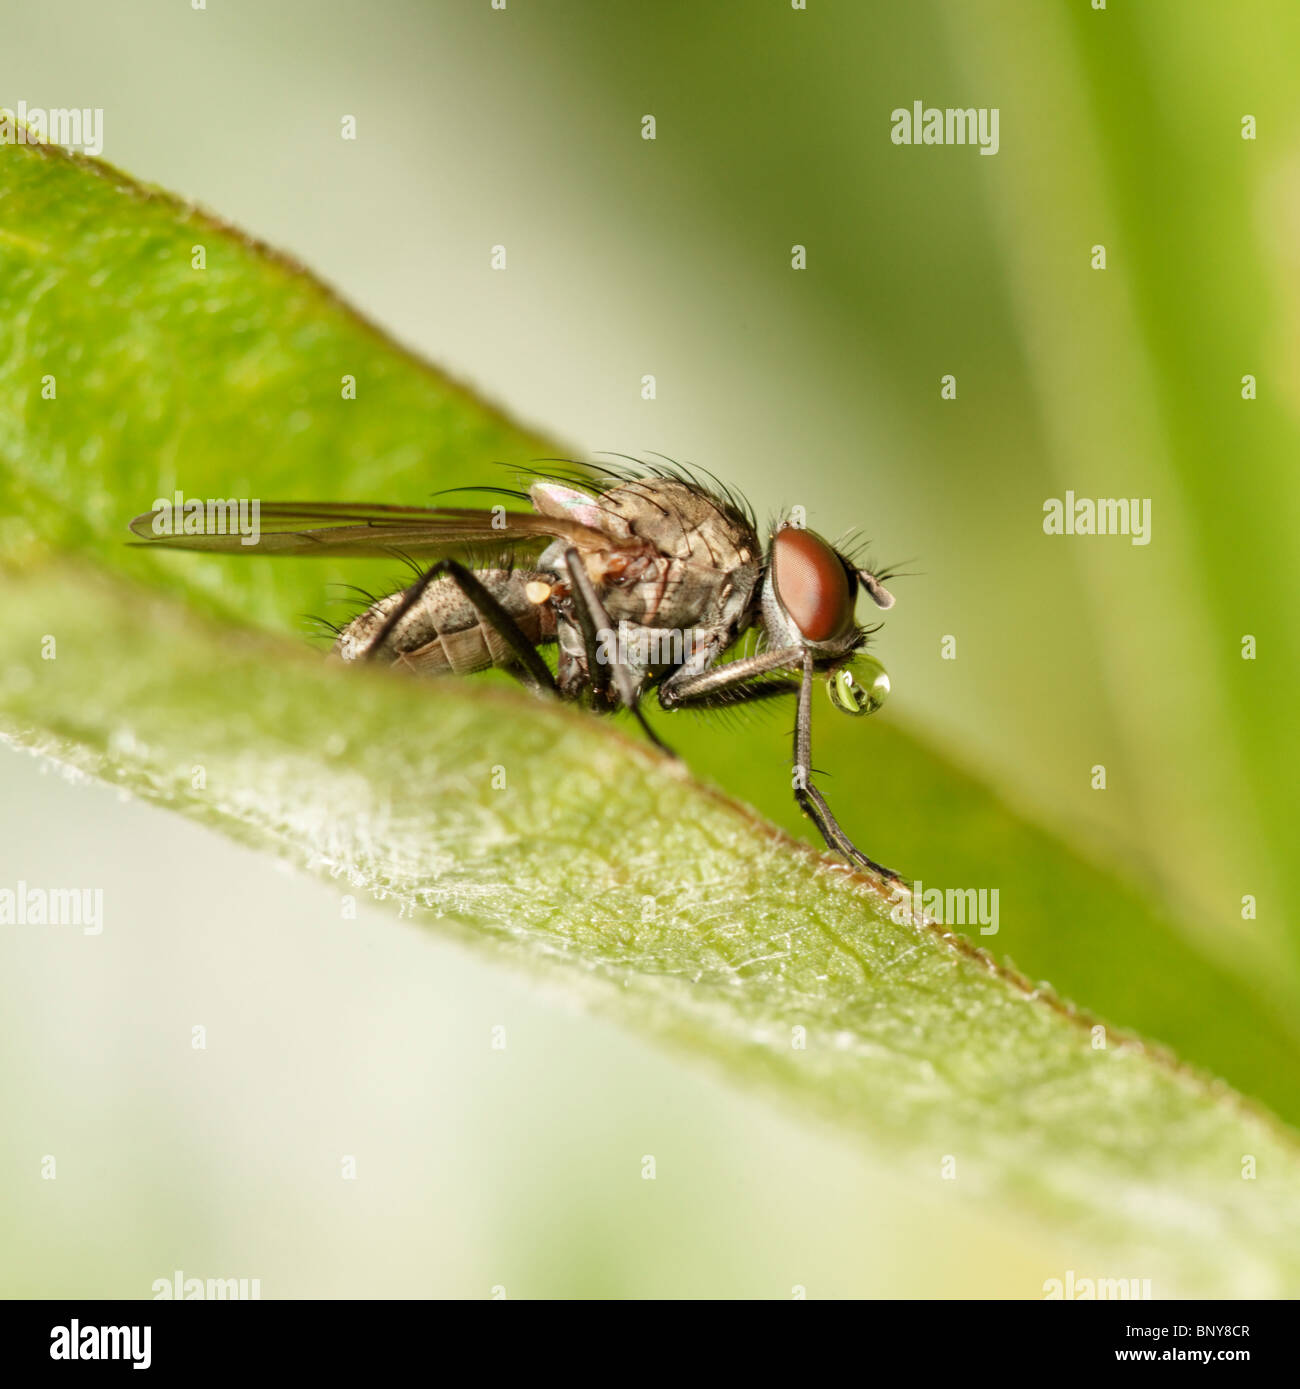 Fly on leaf blowing a bubble. Diptera. Stock Photo